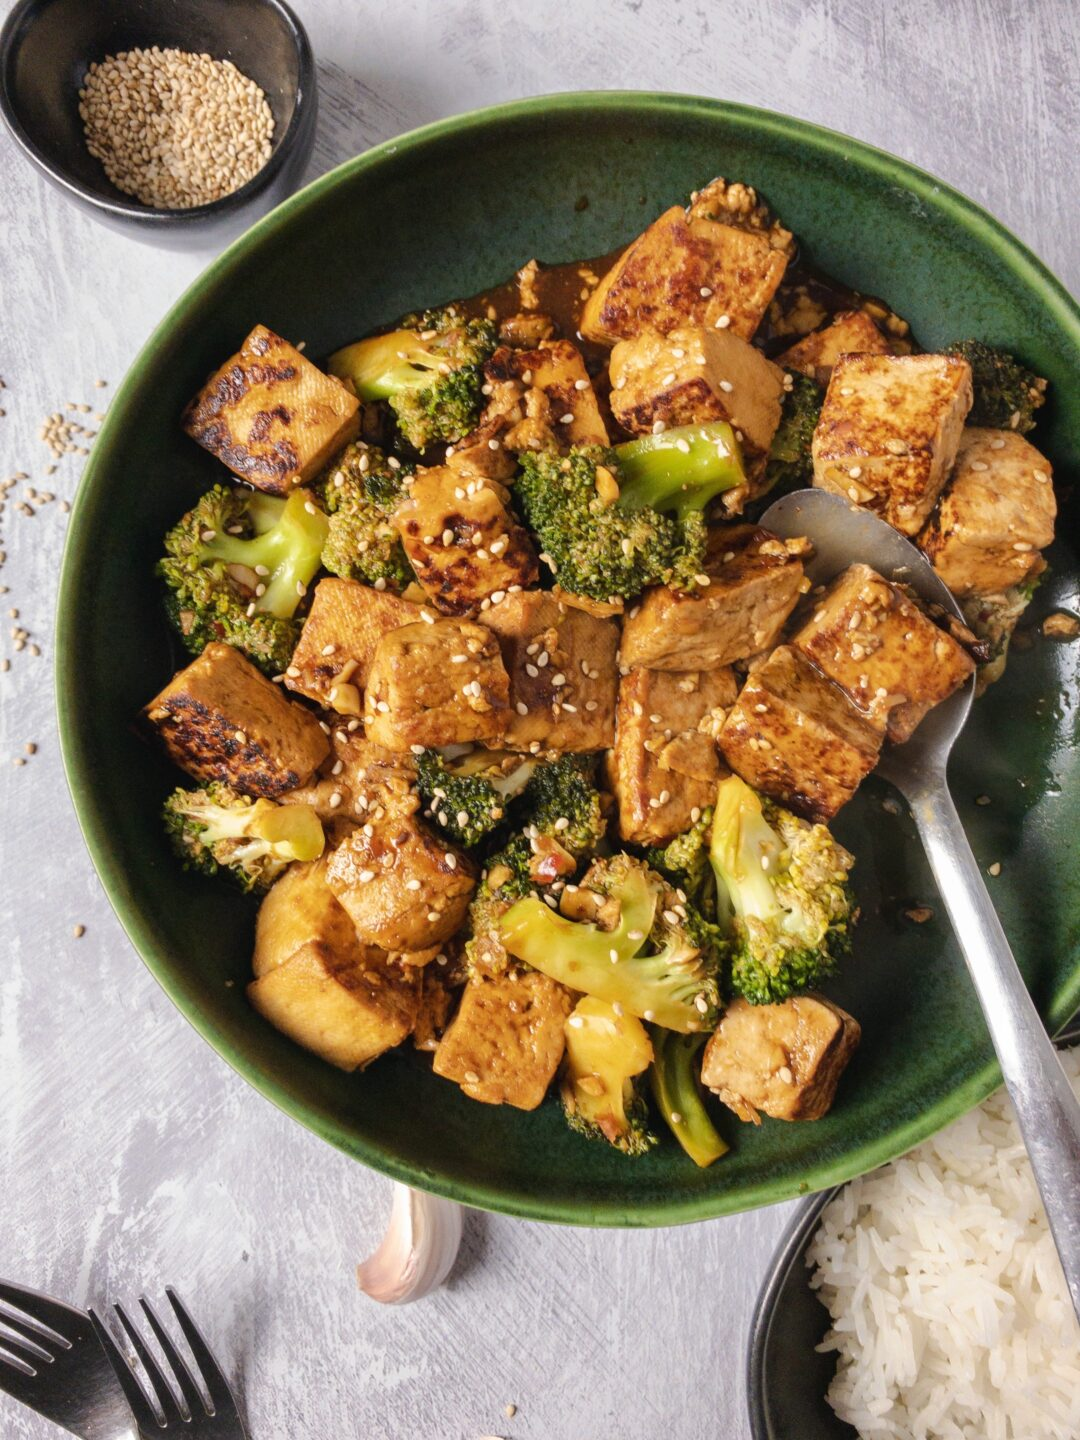 Spicy Tofu and Broccoli Stir Fry